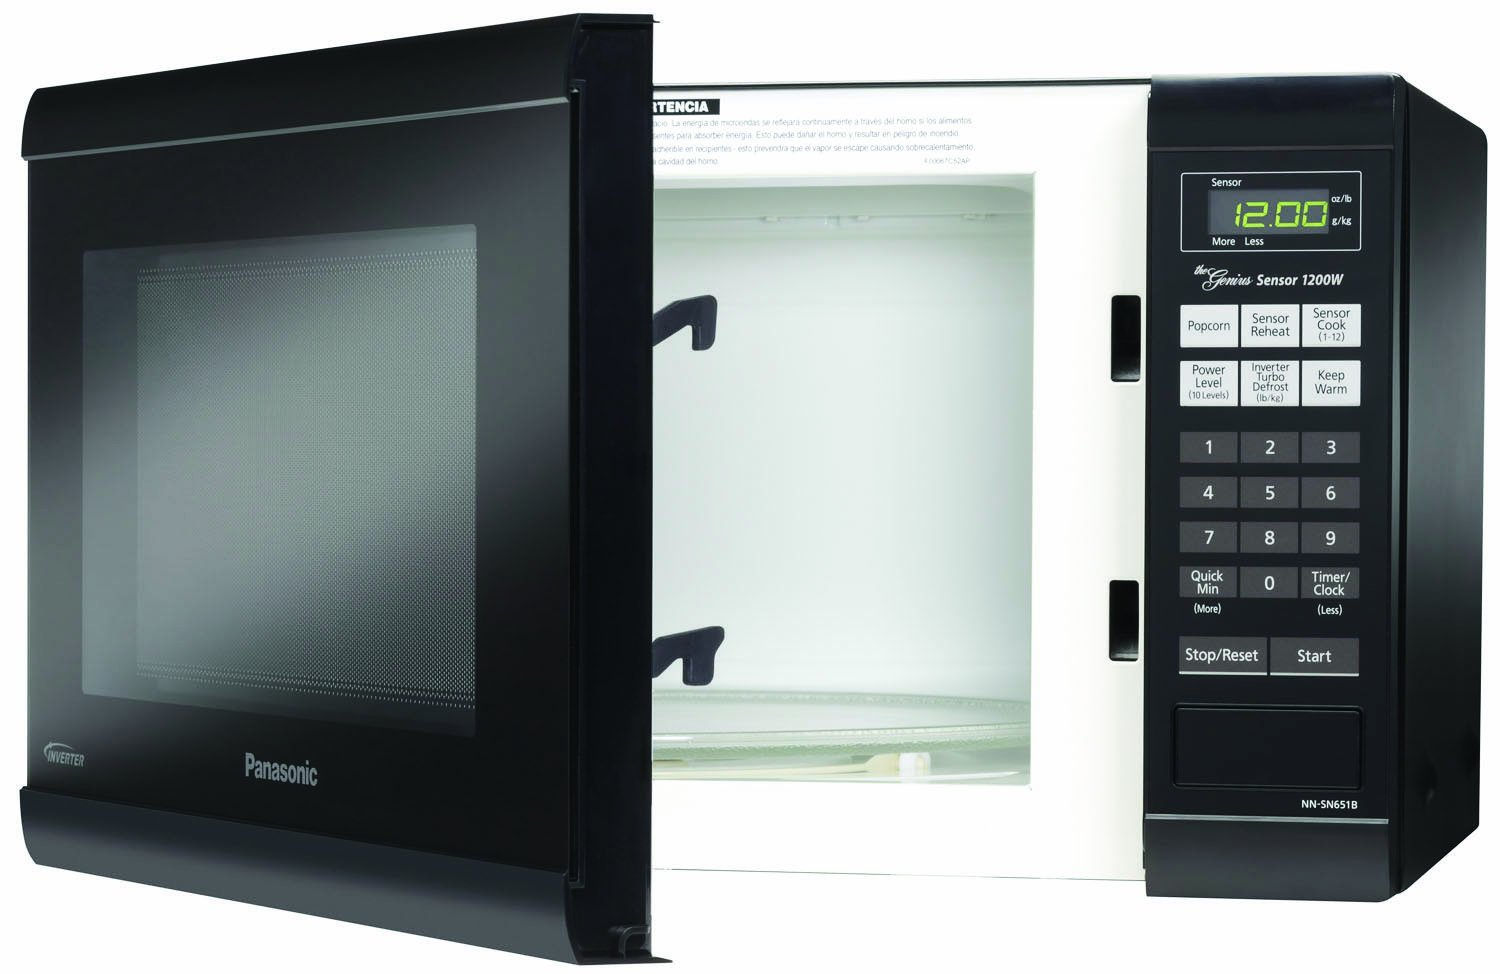 Microwave Door Open The Door Doesn U0027t Open When I Push The